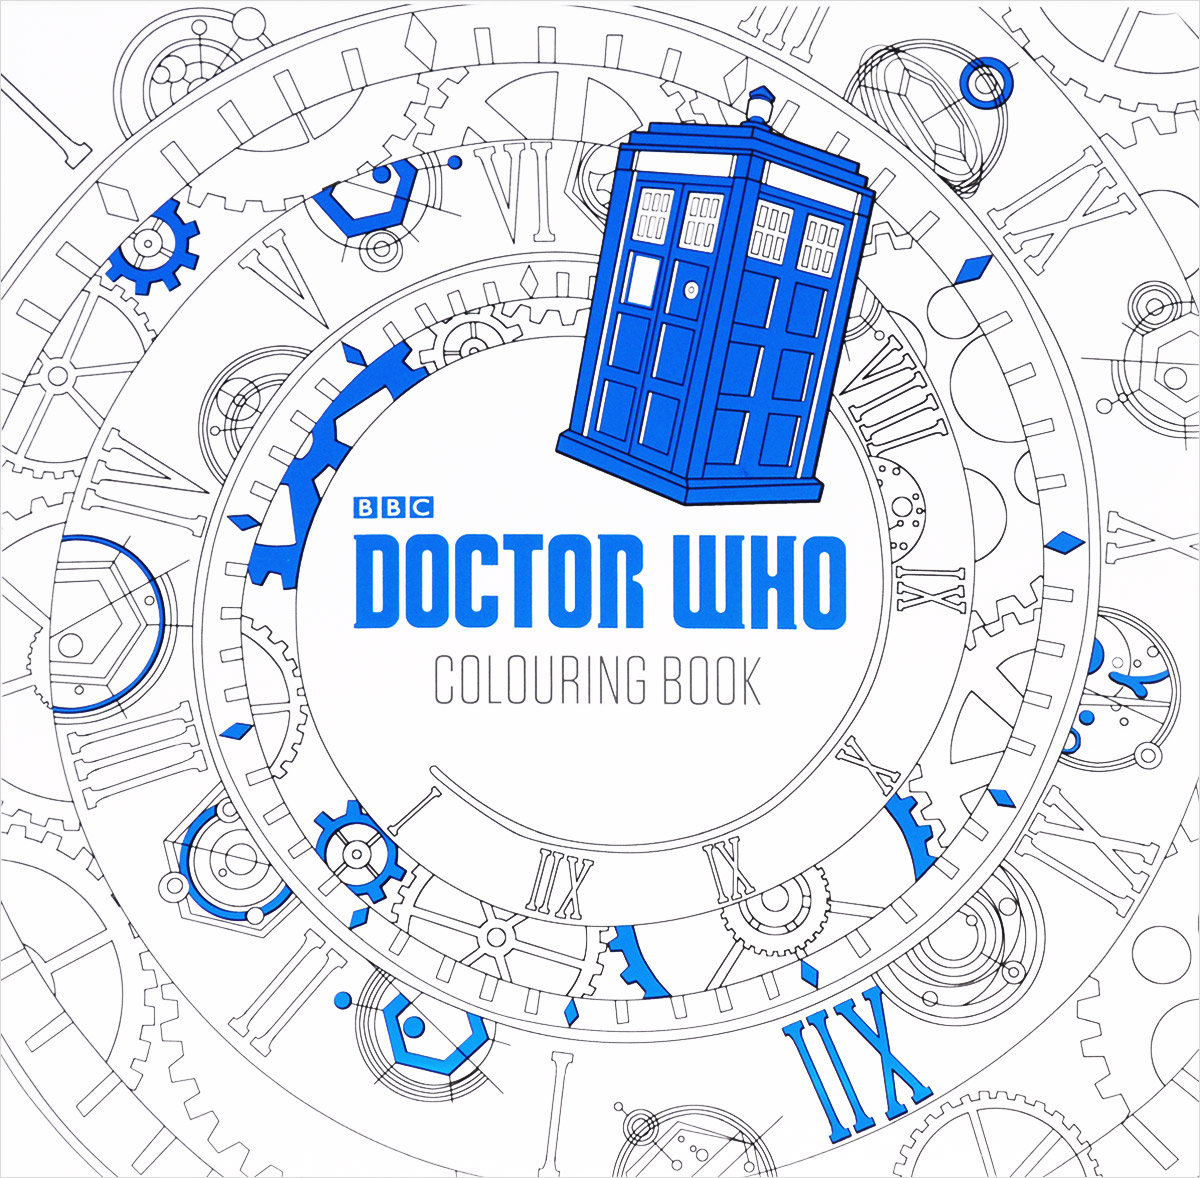 BBC: Doctor Who: Colouring Book